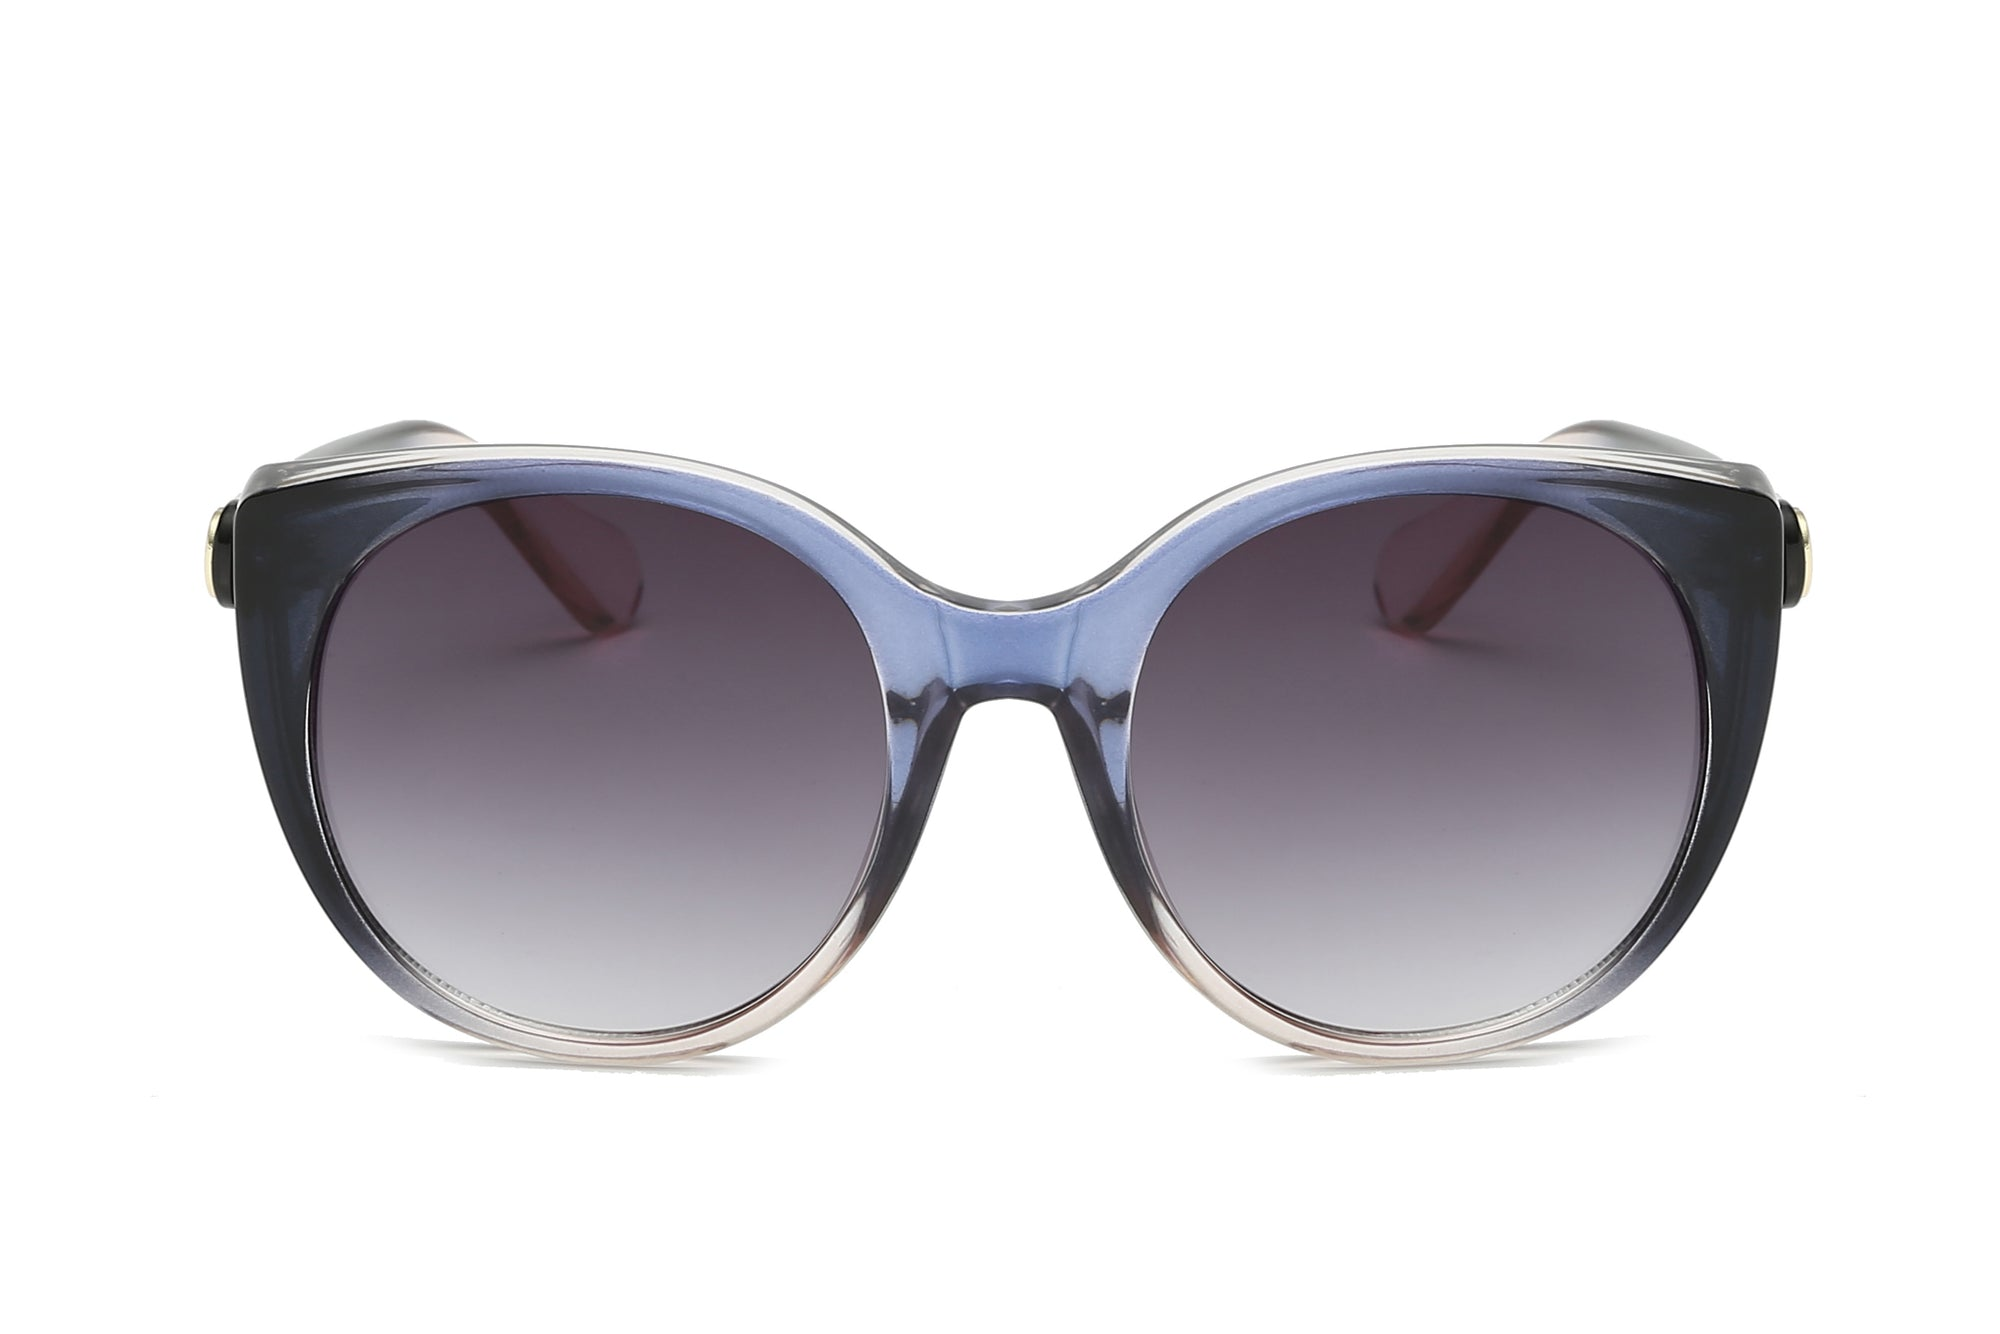 S1121 - Women Round Cat Eye Fashion Sunglasses - Iris Fashion Inc. | Wholesale Sunglasses and Glasses